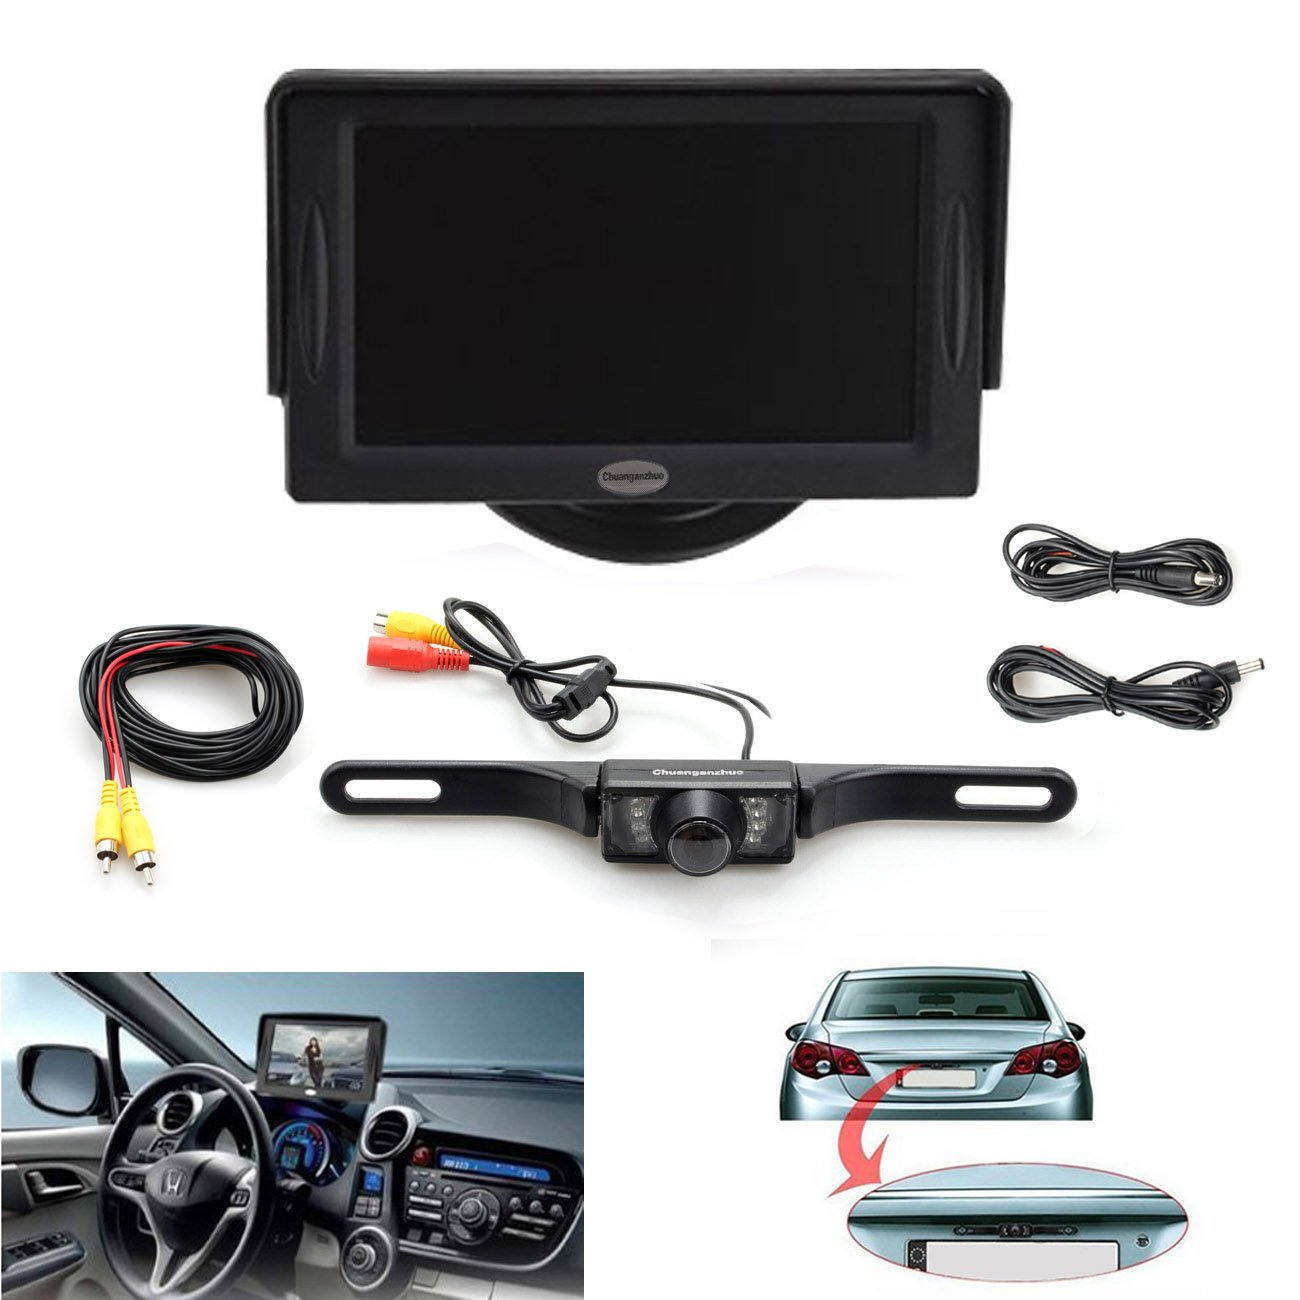 Backup Camera and Monitor Kit For Car,Universal Waterproof Rear-view License Plate Car Rear Backup Parking Camera + 4.3 TFT LCD Rear View Monitor Screen